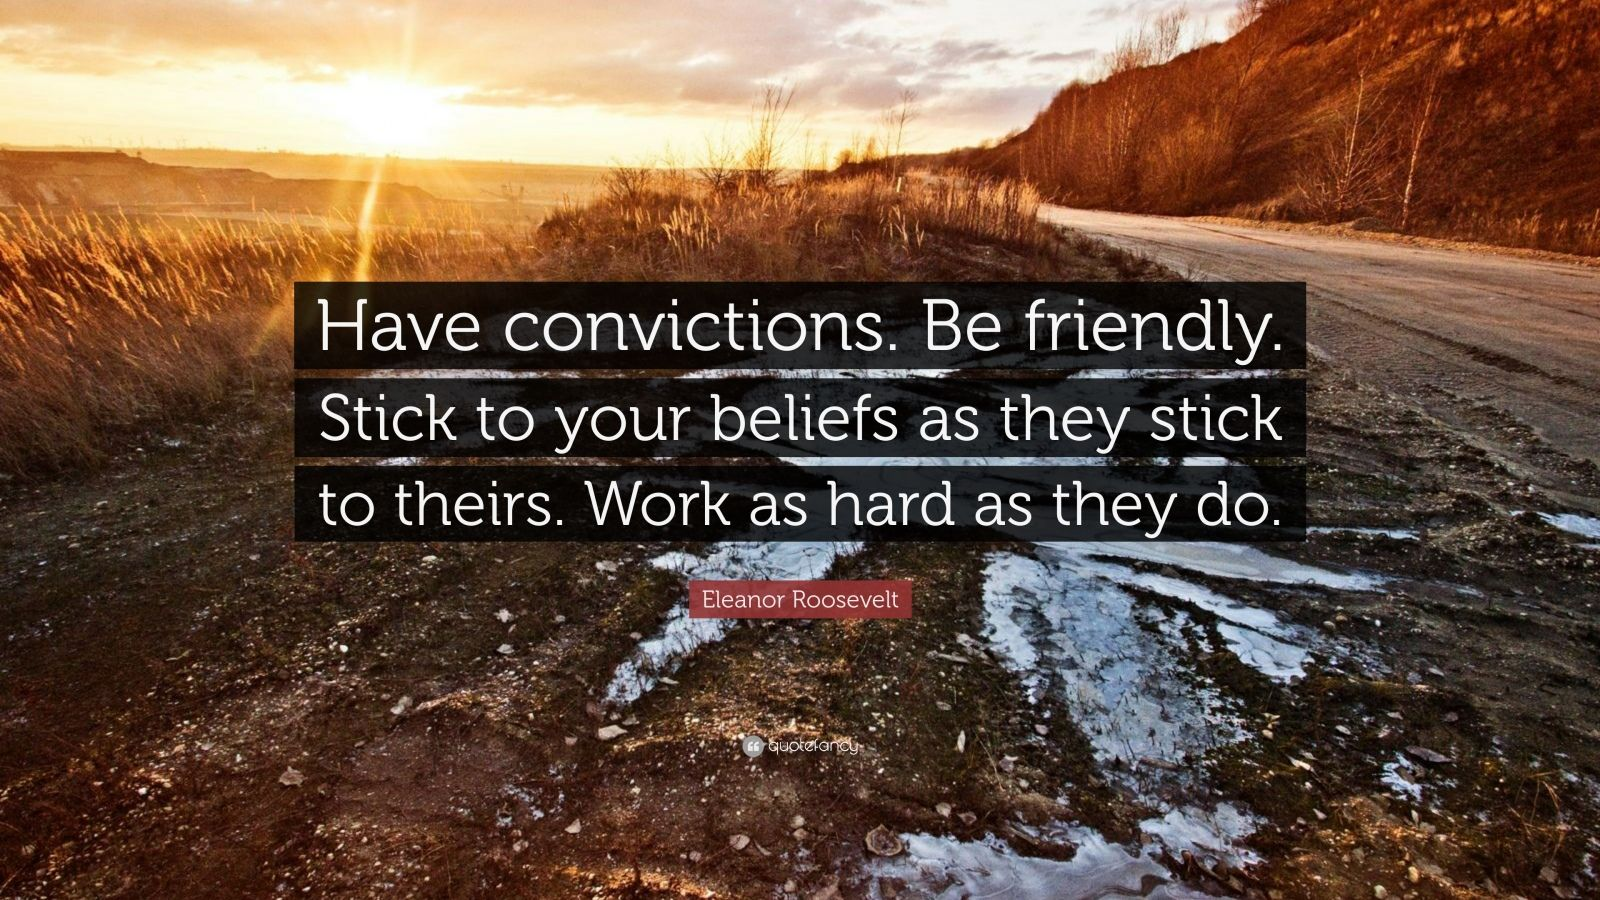 """Eleanor Roosevelt Quote: """"Have convictions. Be friendly. Stick to your beliefs as they stick to theirs. Work as hard as they do."""""""